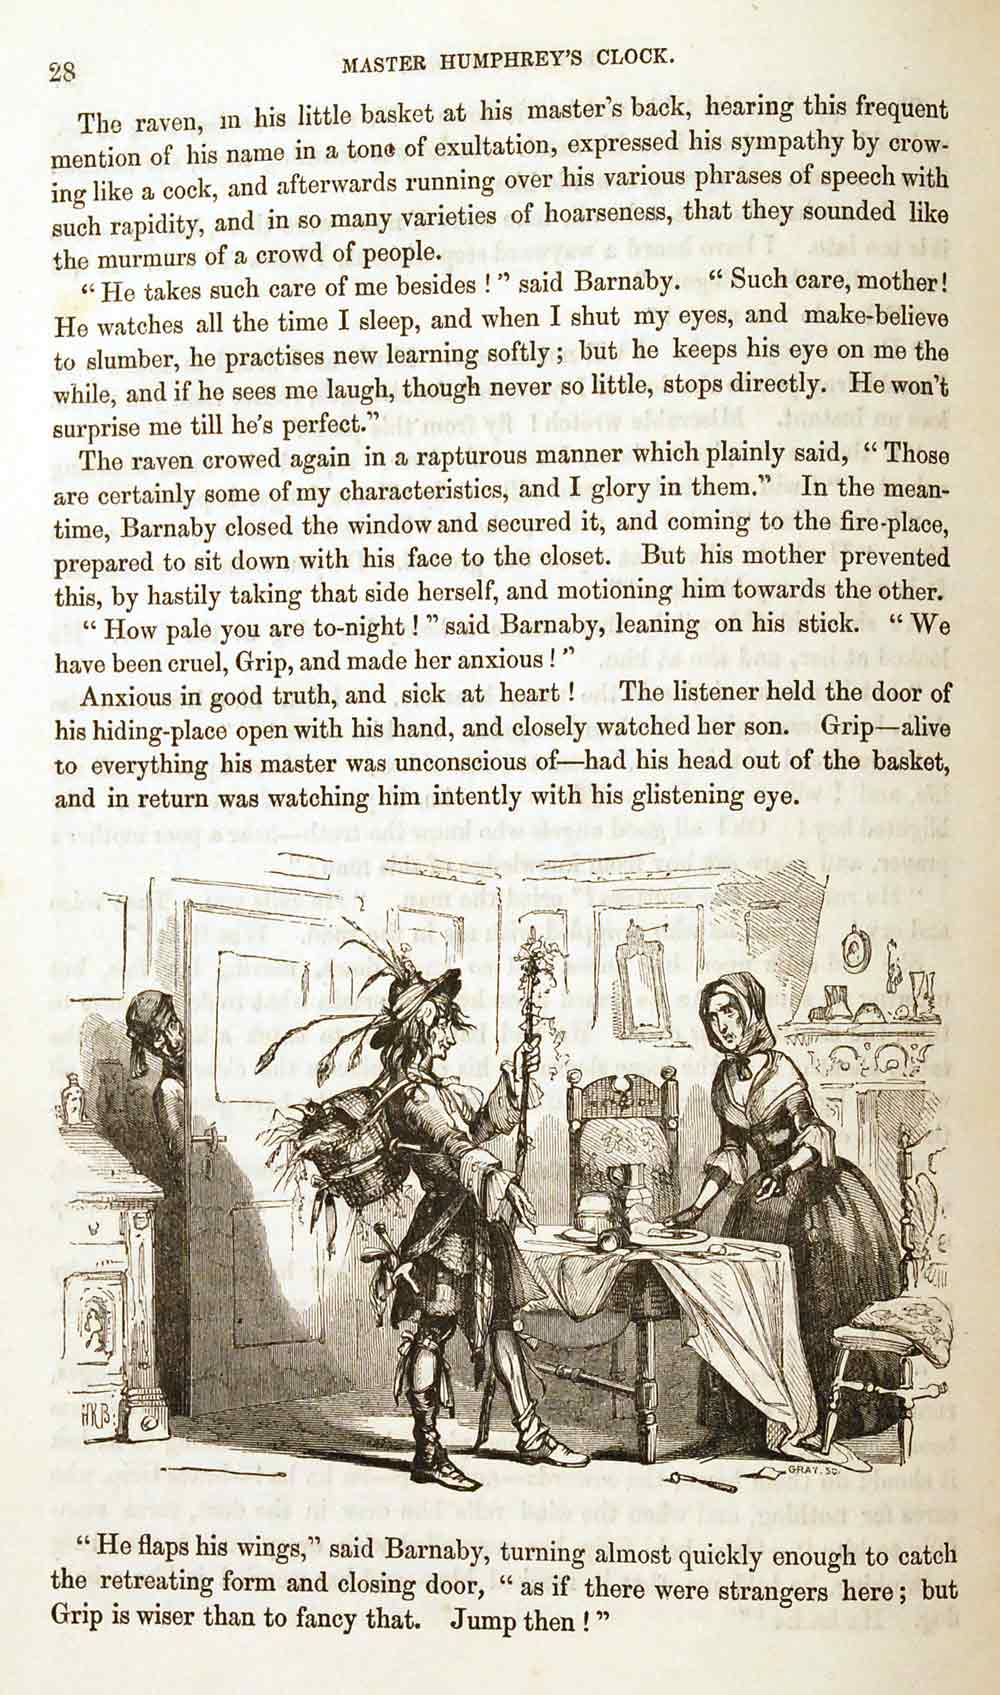 From Chapter Seventeen of Barnaby Rudge: A Tale of the Riots of 'Eighty in Master Humphrey's Clock No. 55. London: Chapman and Hall, 17 April 1841